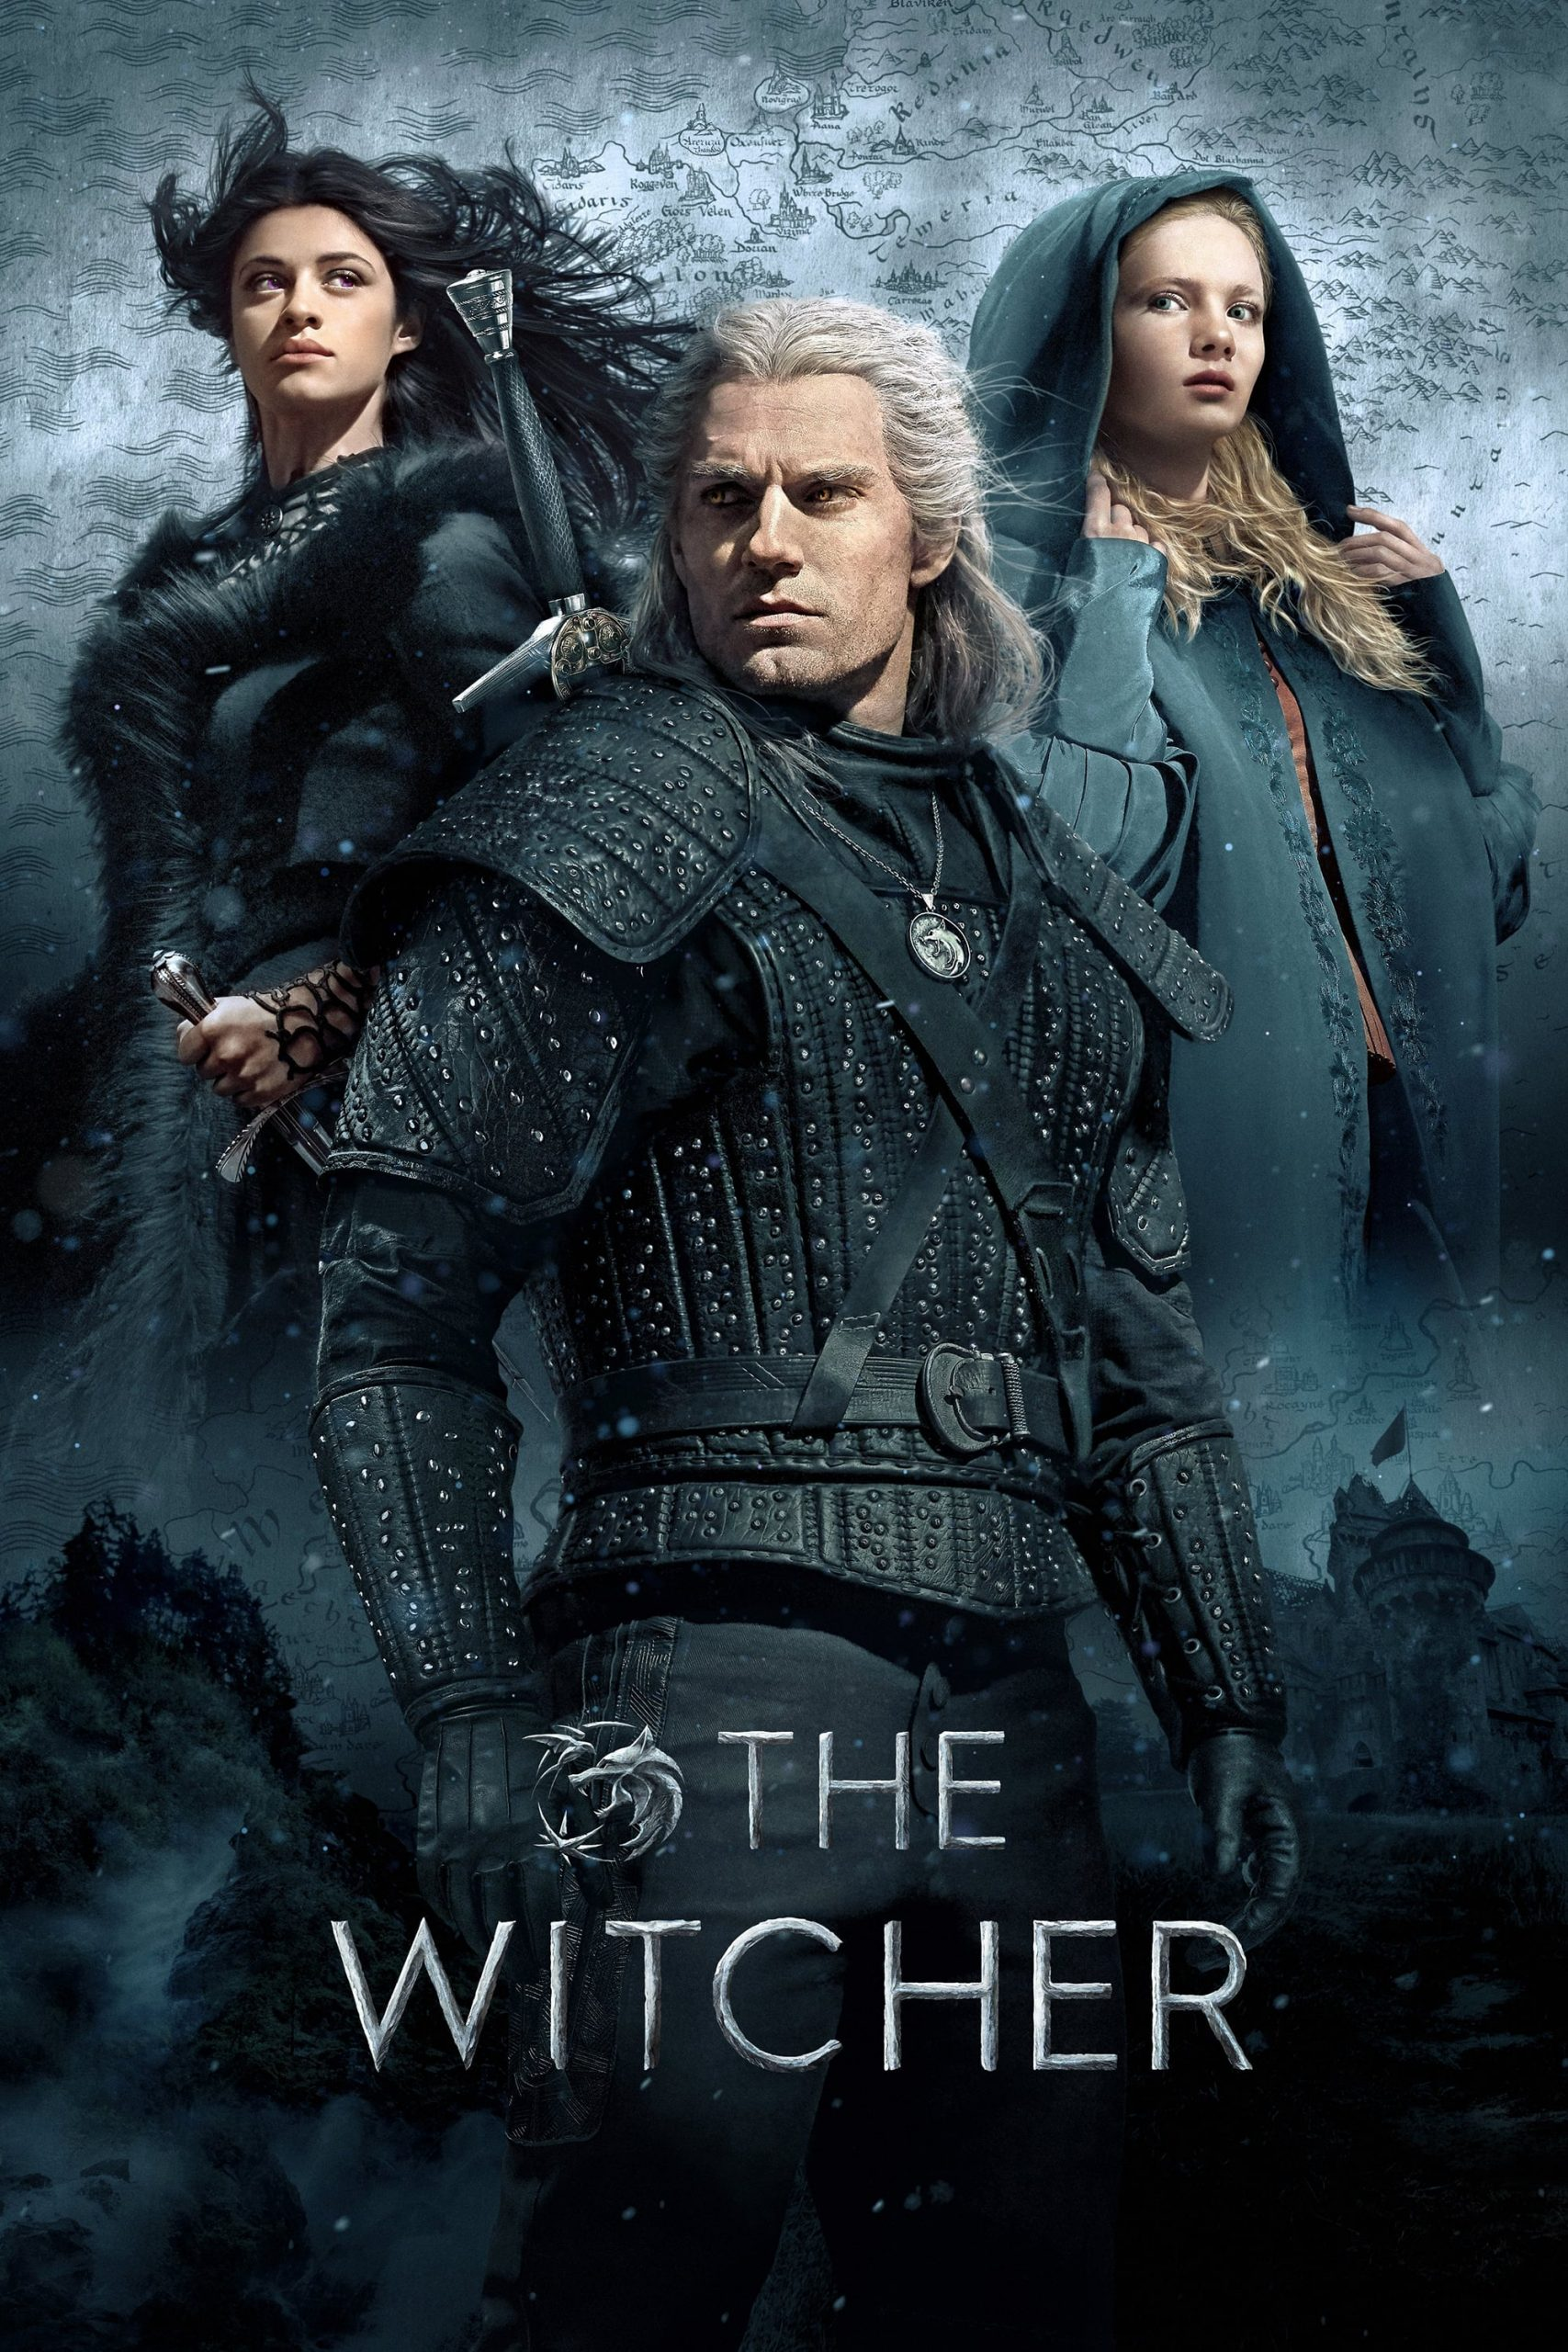 The Witcher S1 EP6 (2019) Subtitle Indonesia